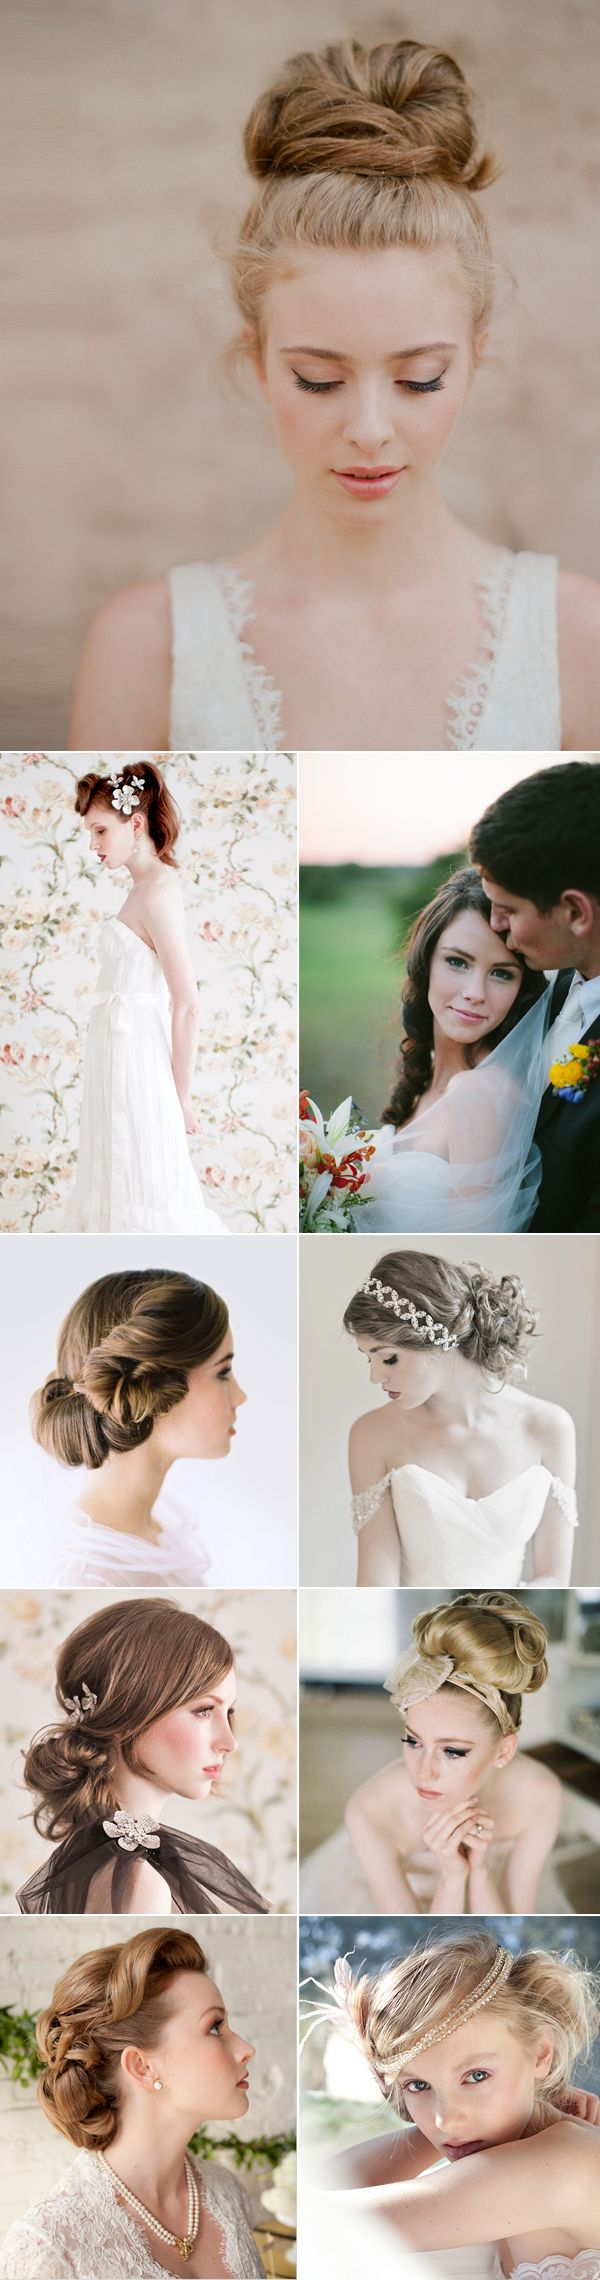 16 Natural and Elegant Bridal Hairstyles | Bridal hairstyles, Bridal ...